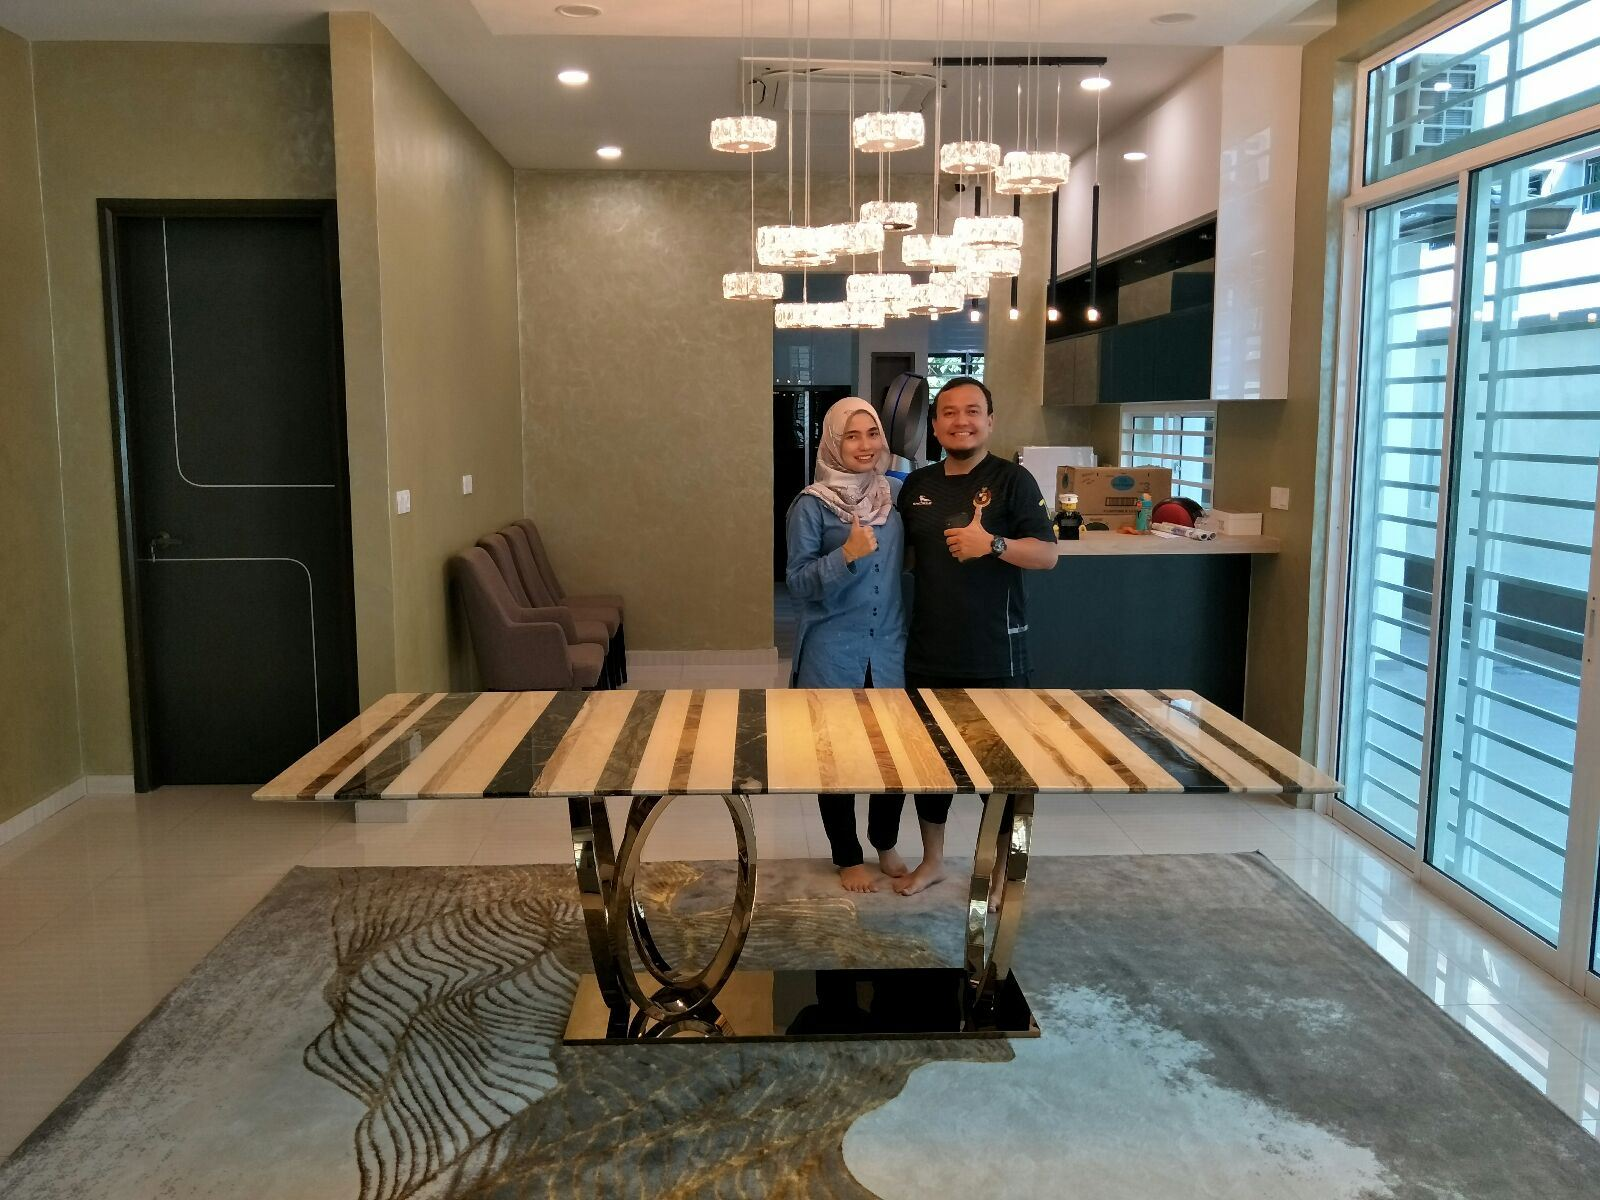 Marble Dining Table From India/Turkey/Italy